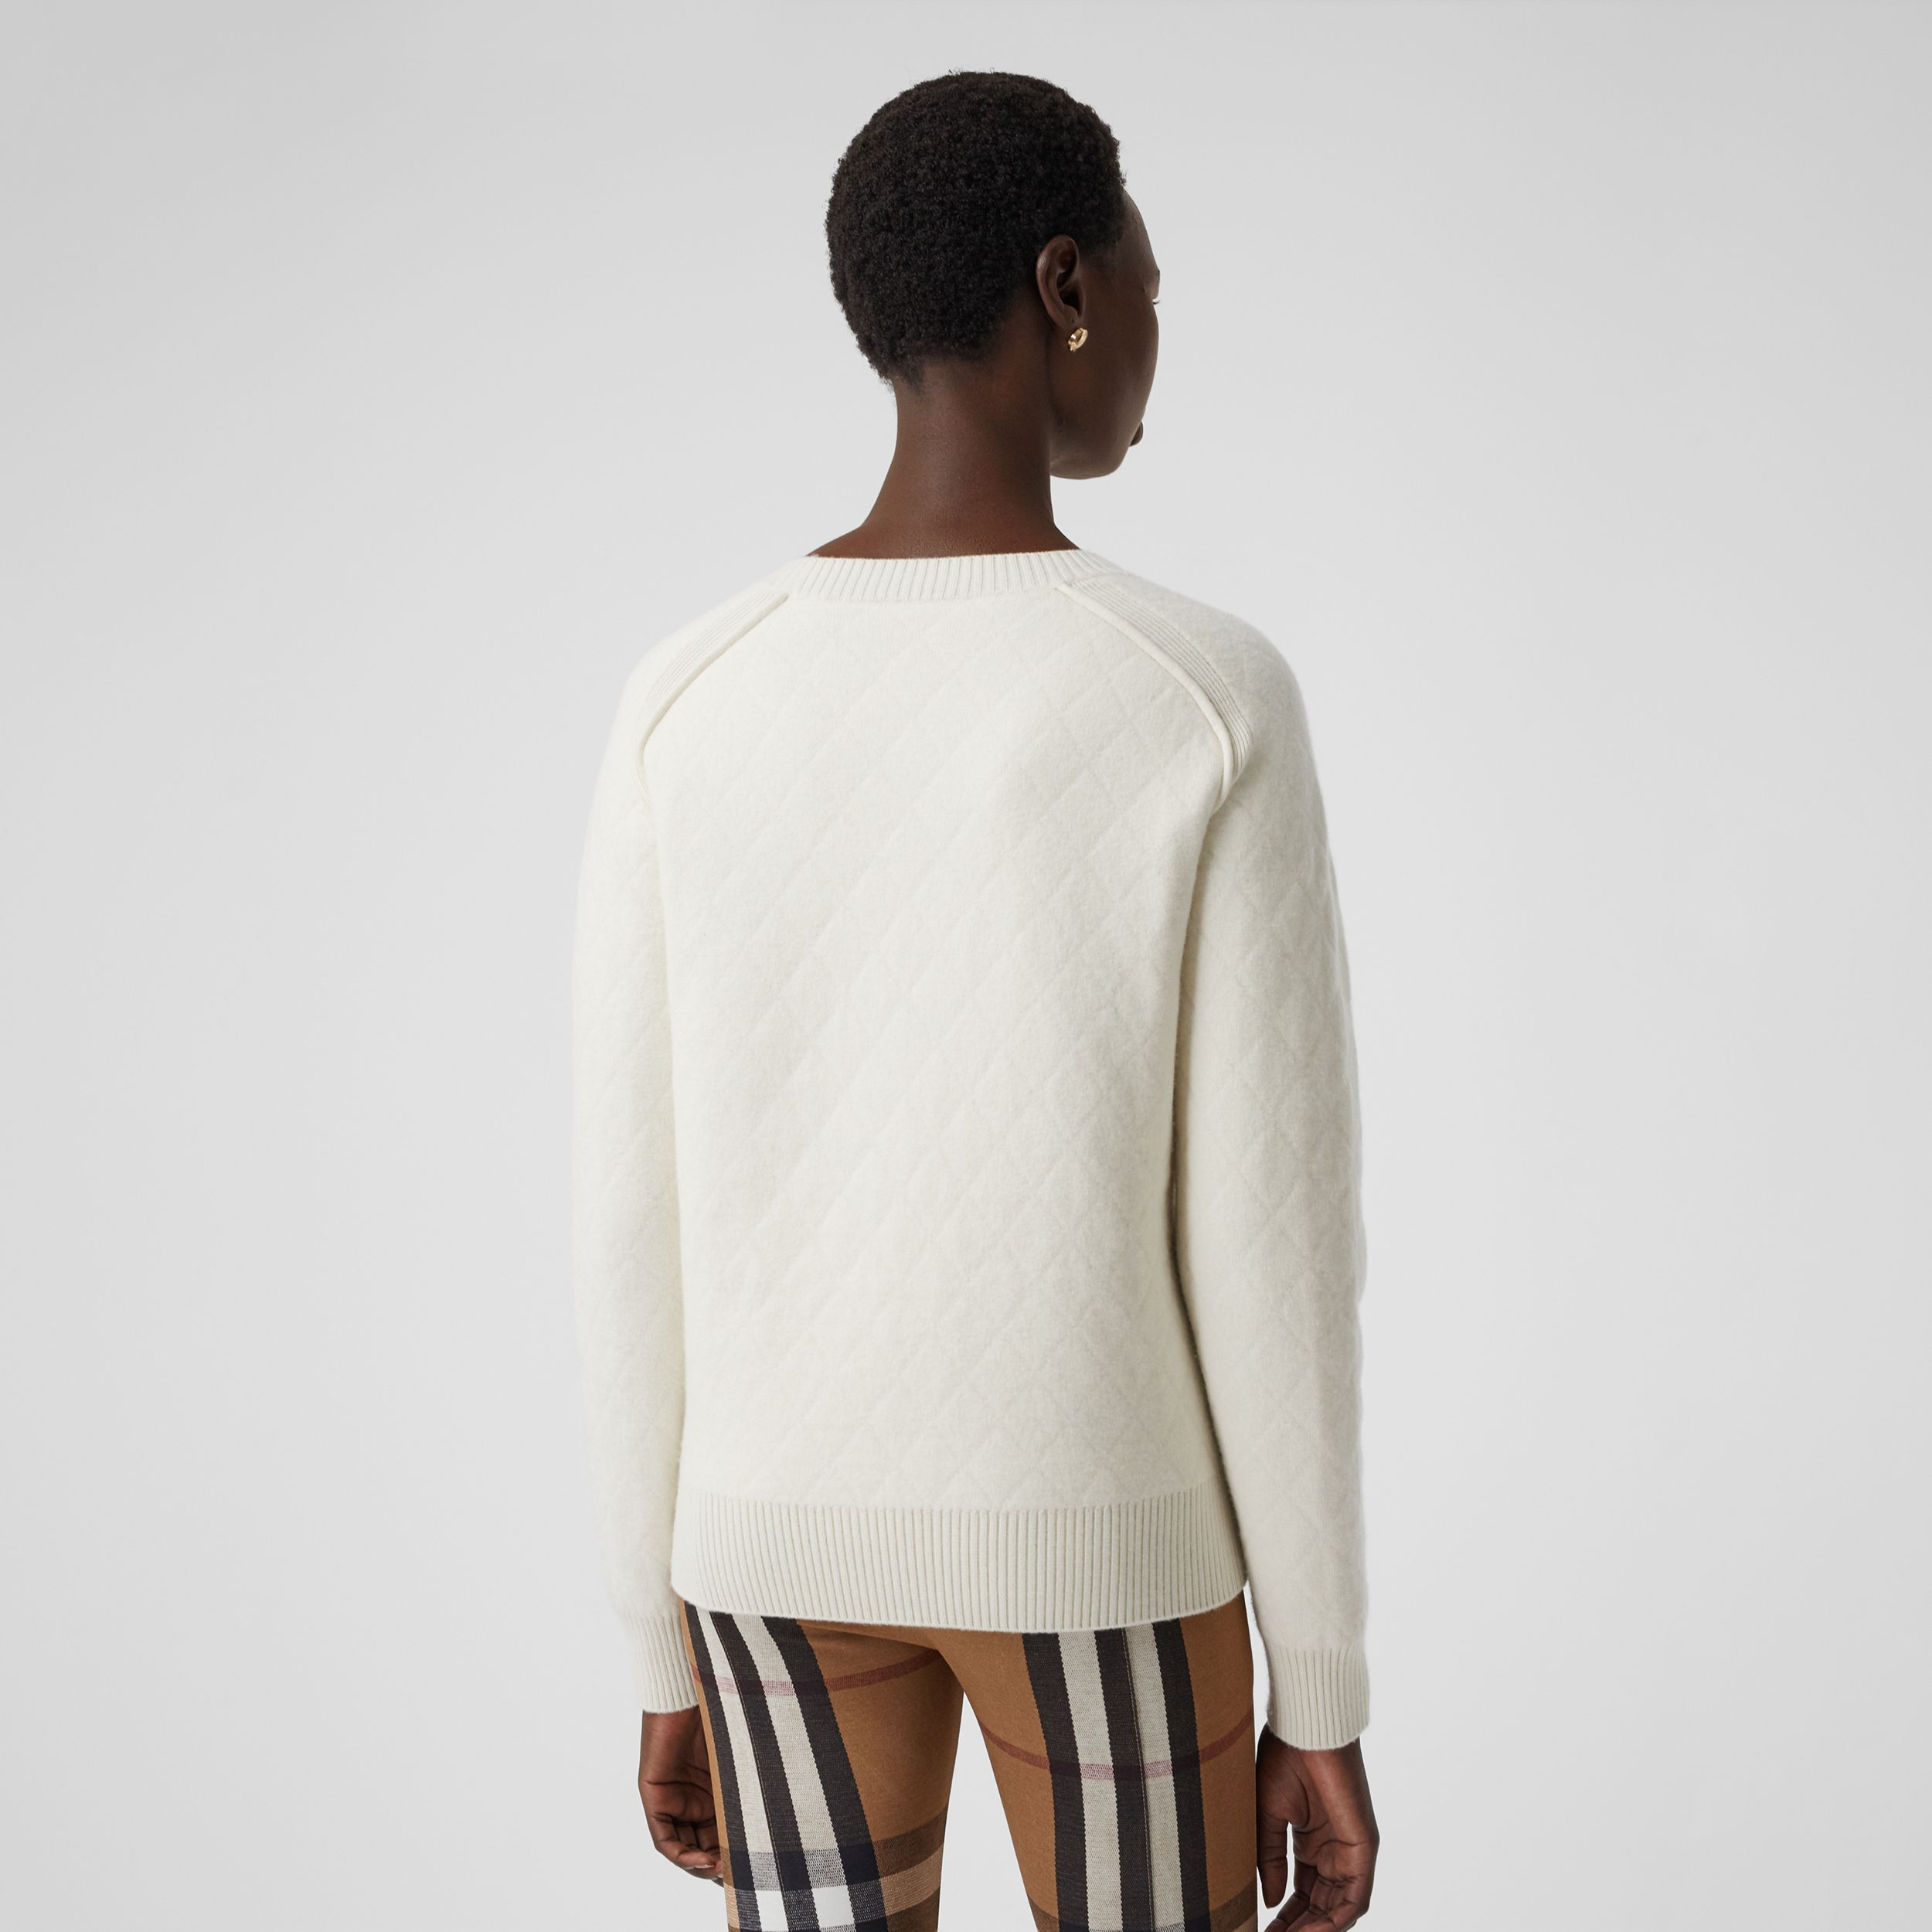 Diamond Knit Wool Sweater in Cream - Women | Burberry - 3